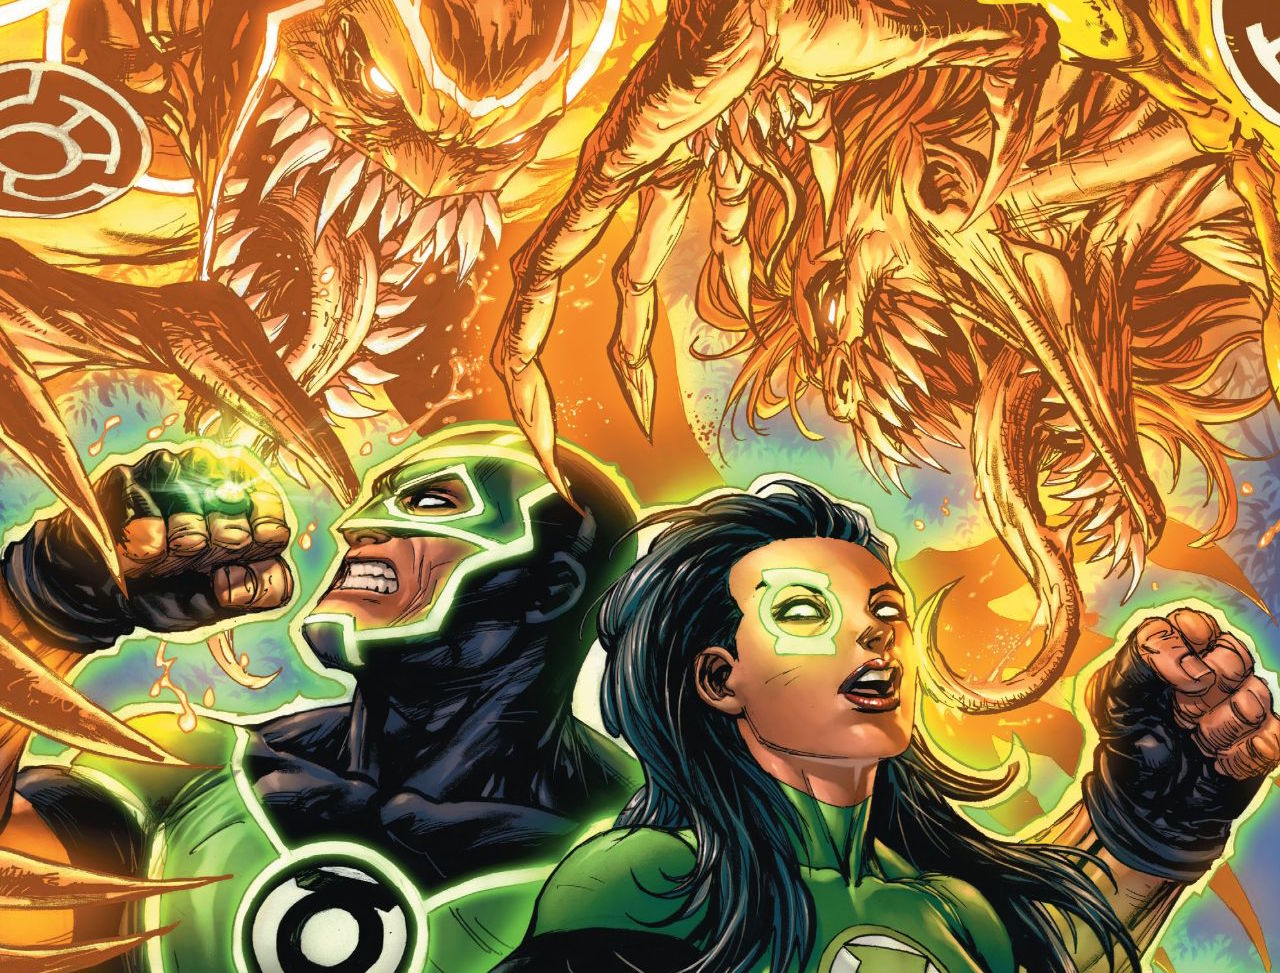 The Phantom Ring has, of course, fallen into the wrong hands and may destroy Earth as we know it! Where is Hal Jordan again? Sheesh.